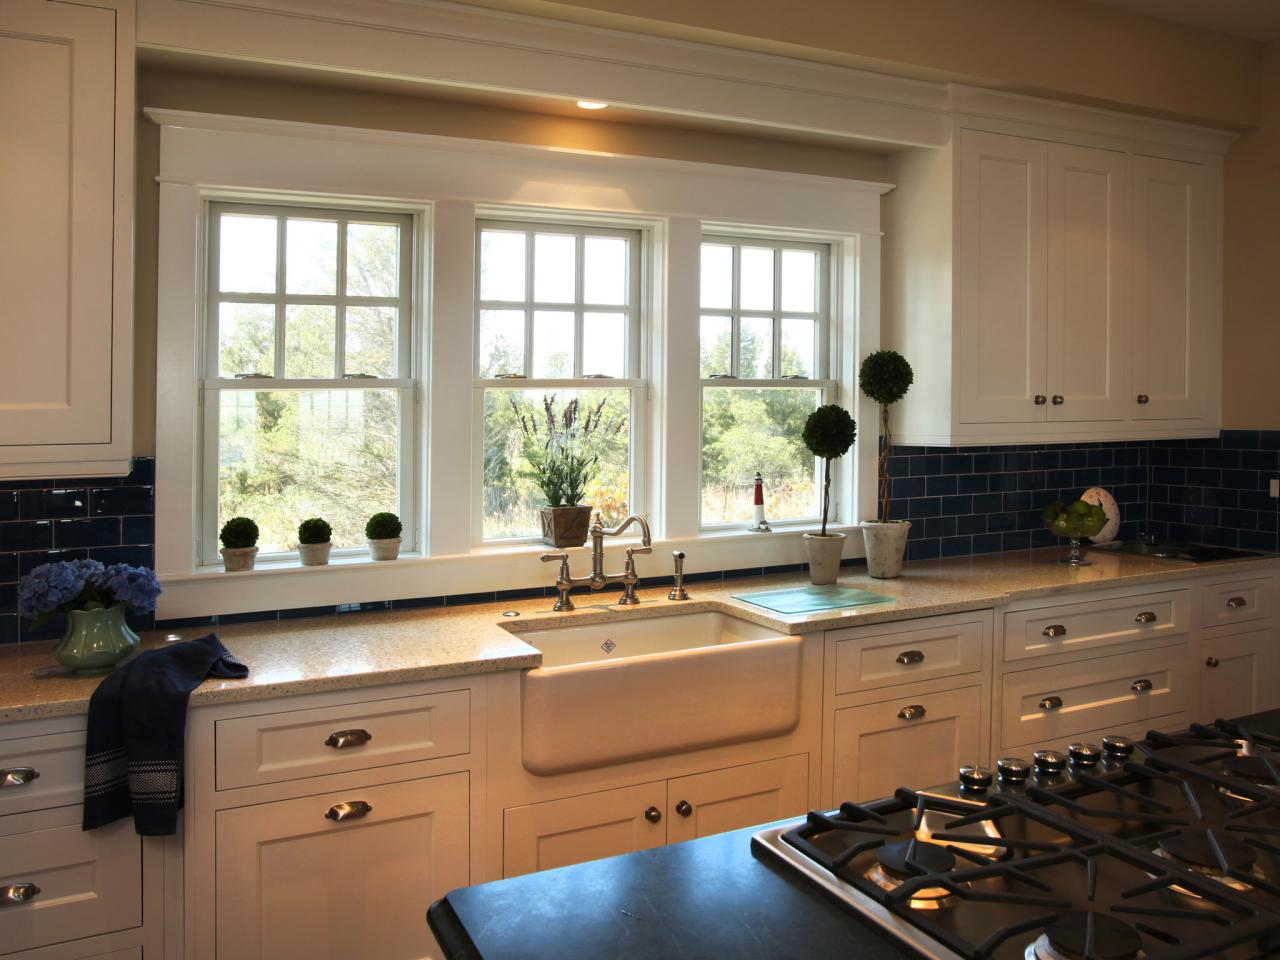 Kitchen Window Ideas: Pictures, Ideas & Tips From HGTV | HGTV